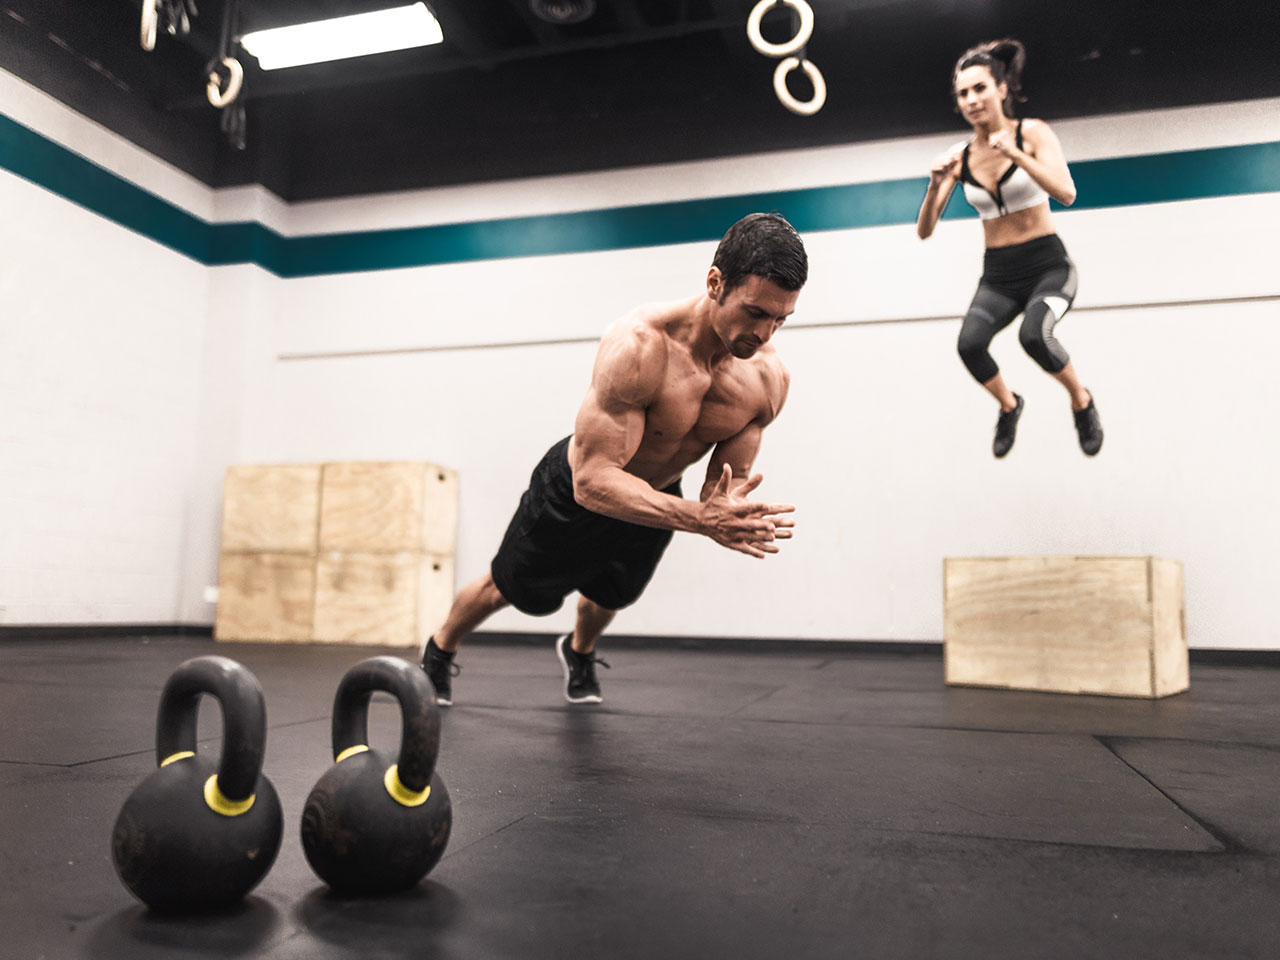 Get a fighter's physique: Workout 1